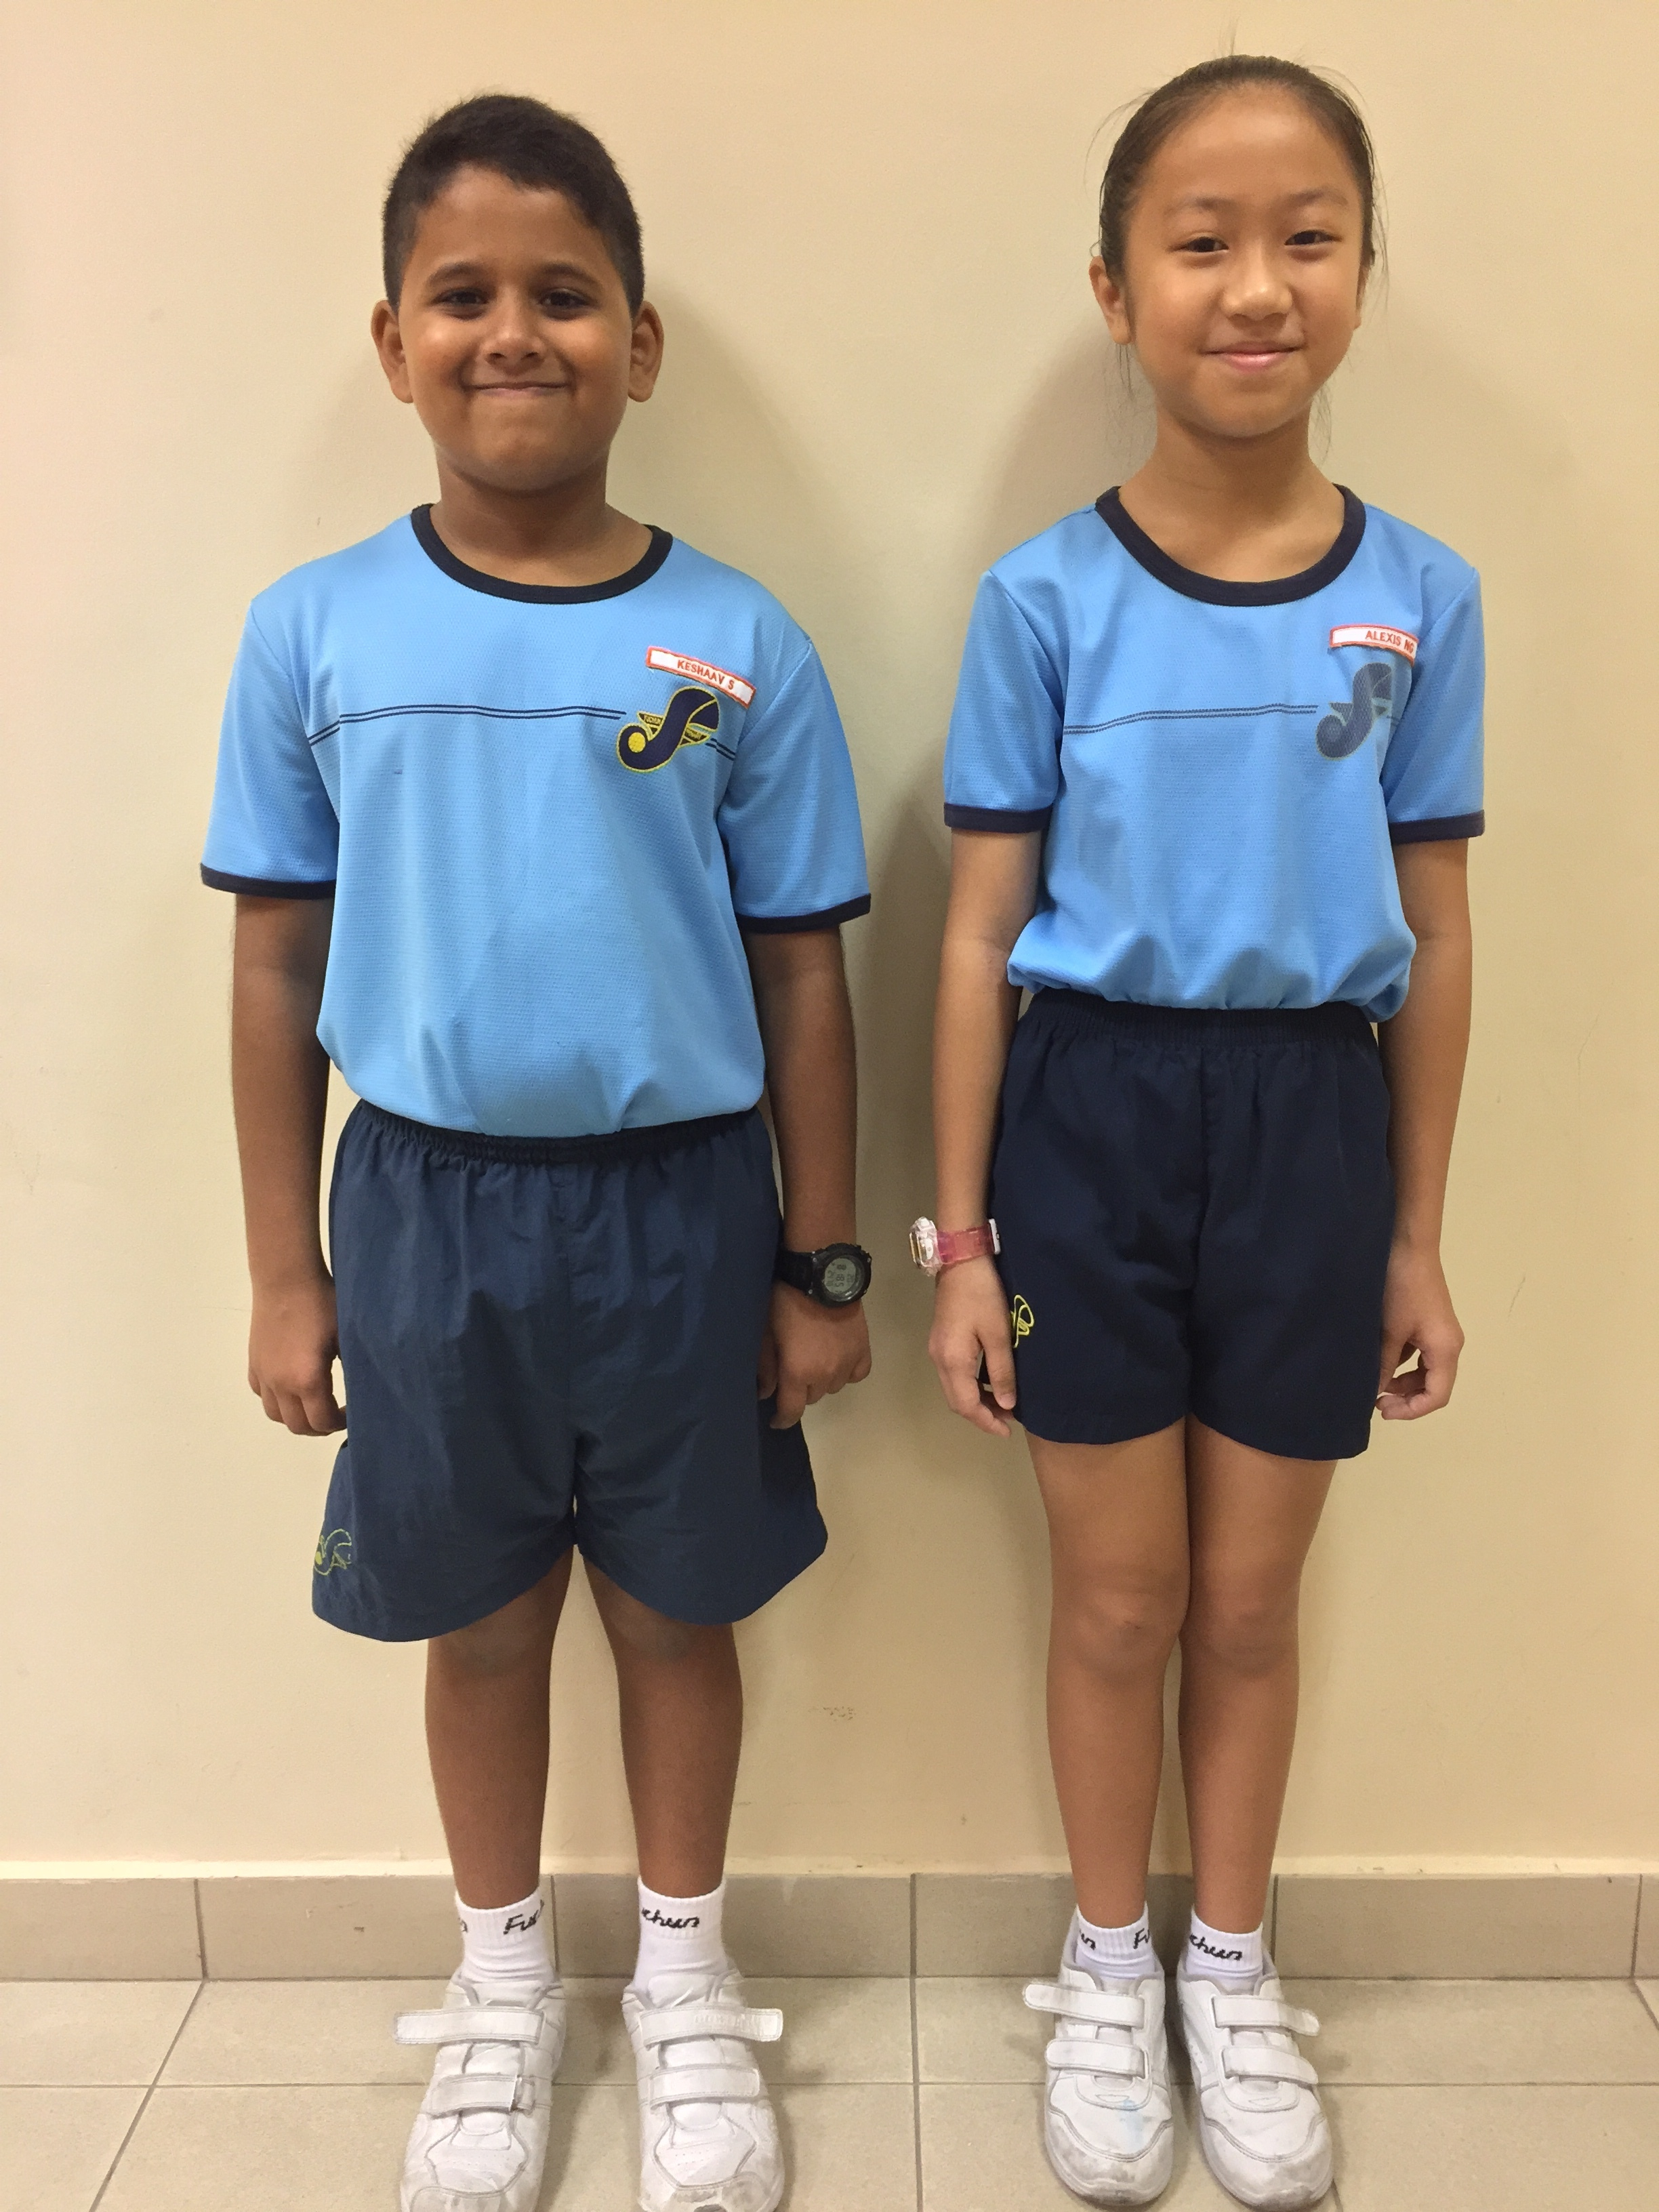 Proper attire and appearance in PE attire